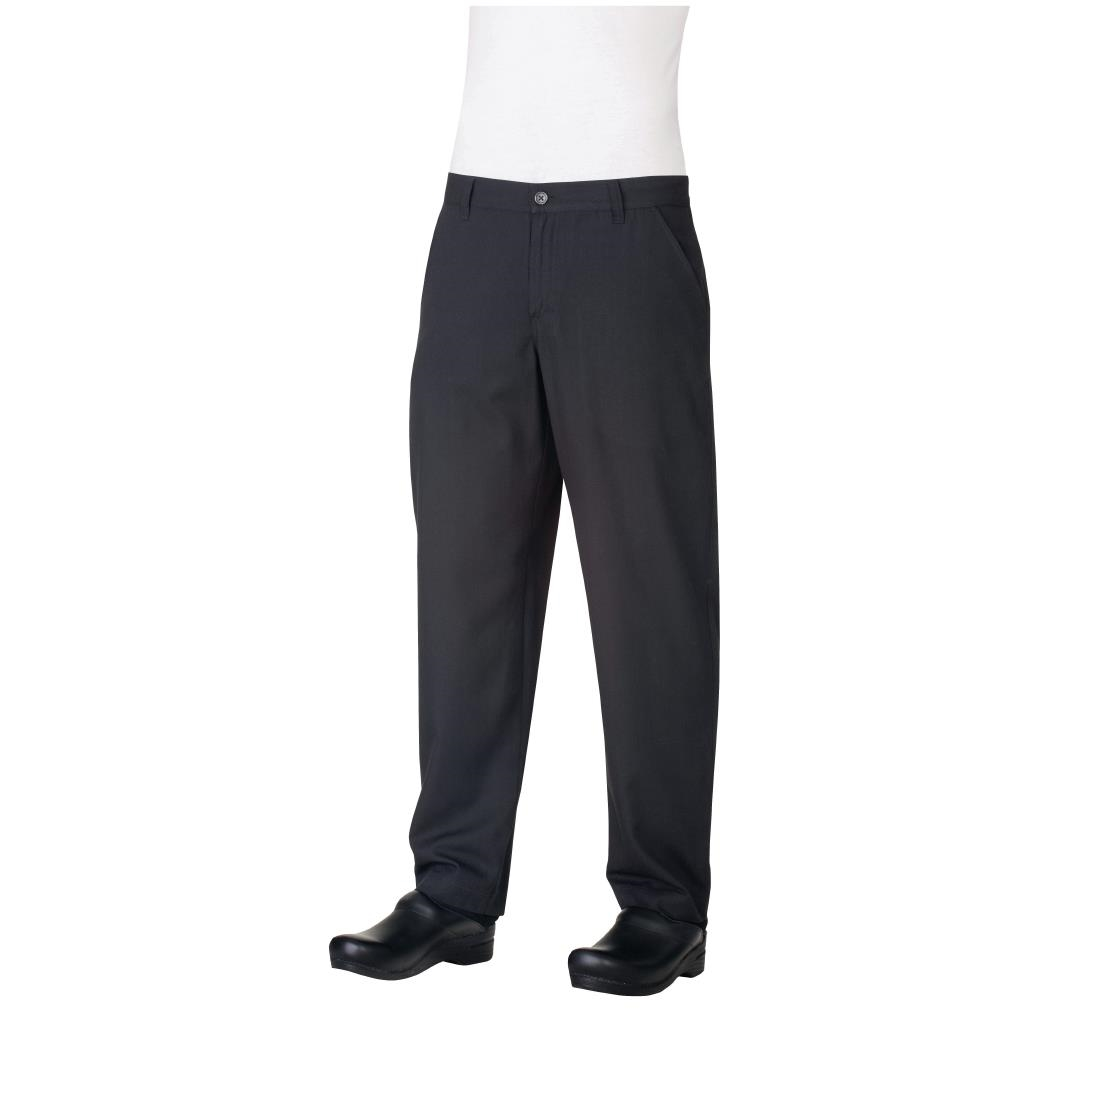 Image of Chef Works Constructed Chefs Trousers Black 28